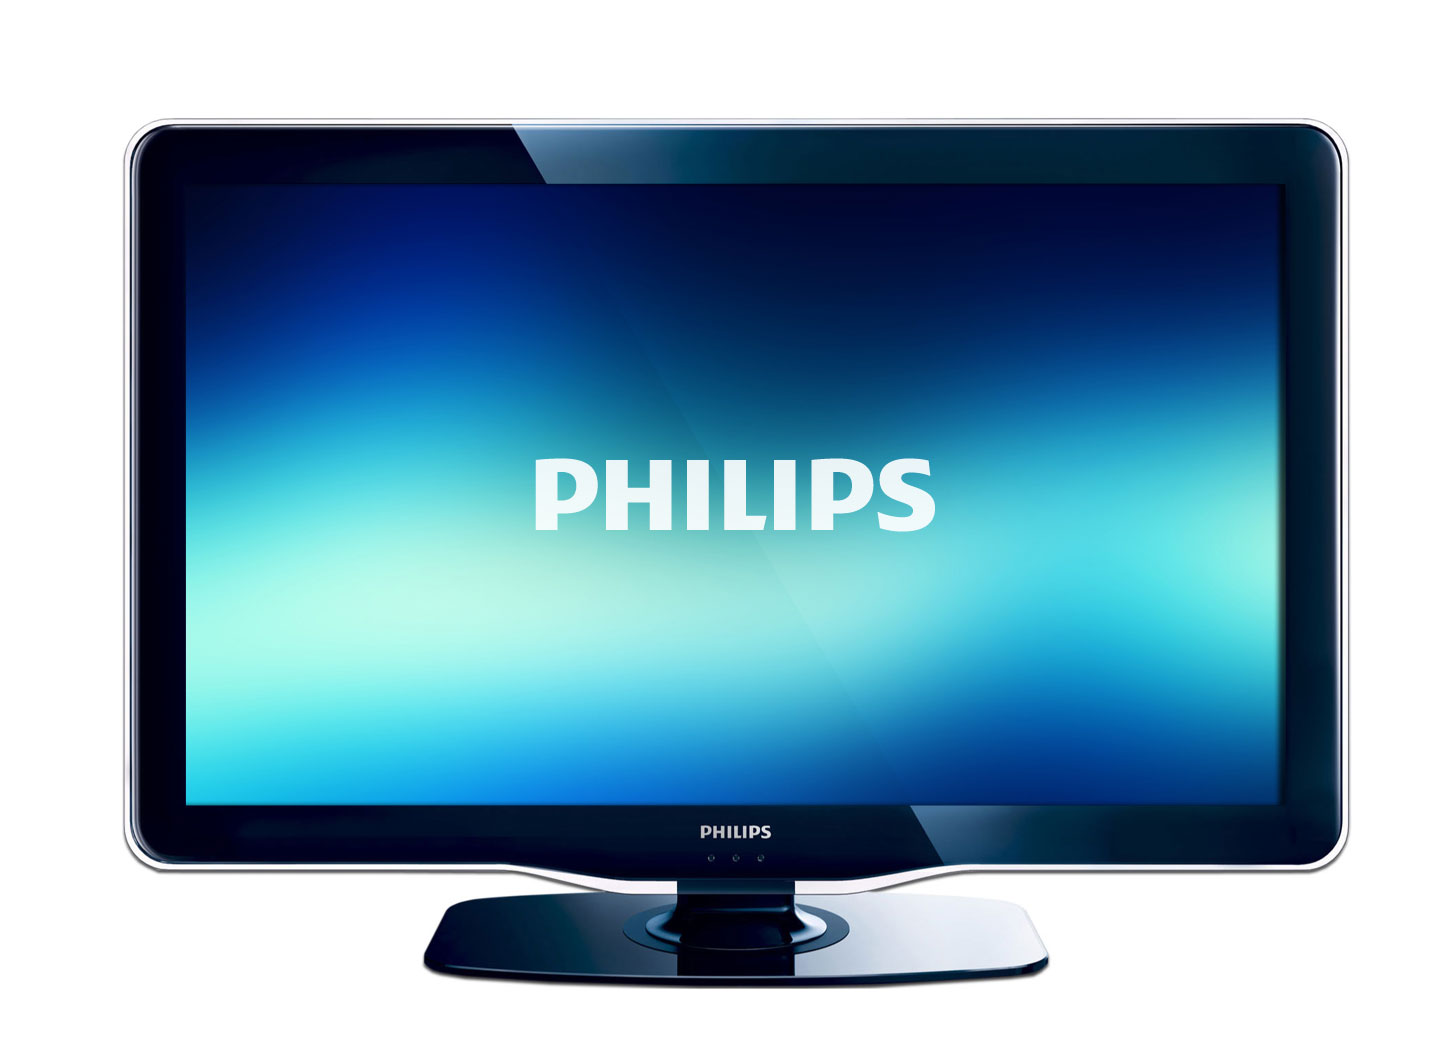 m1574687pp_LCD-TV-PHILIPS-32PFL5605H-1440